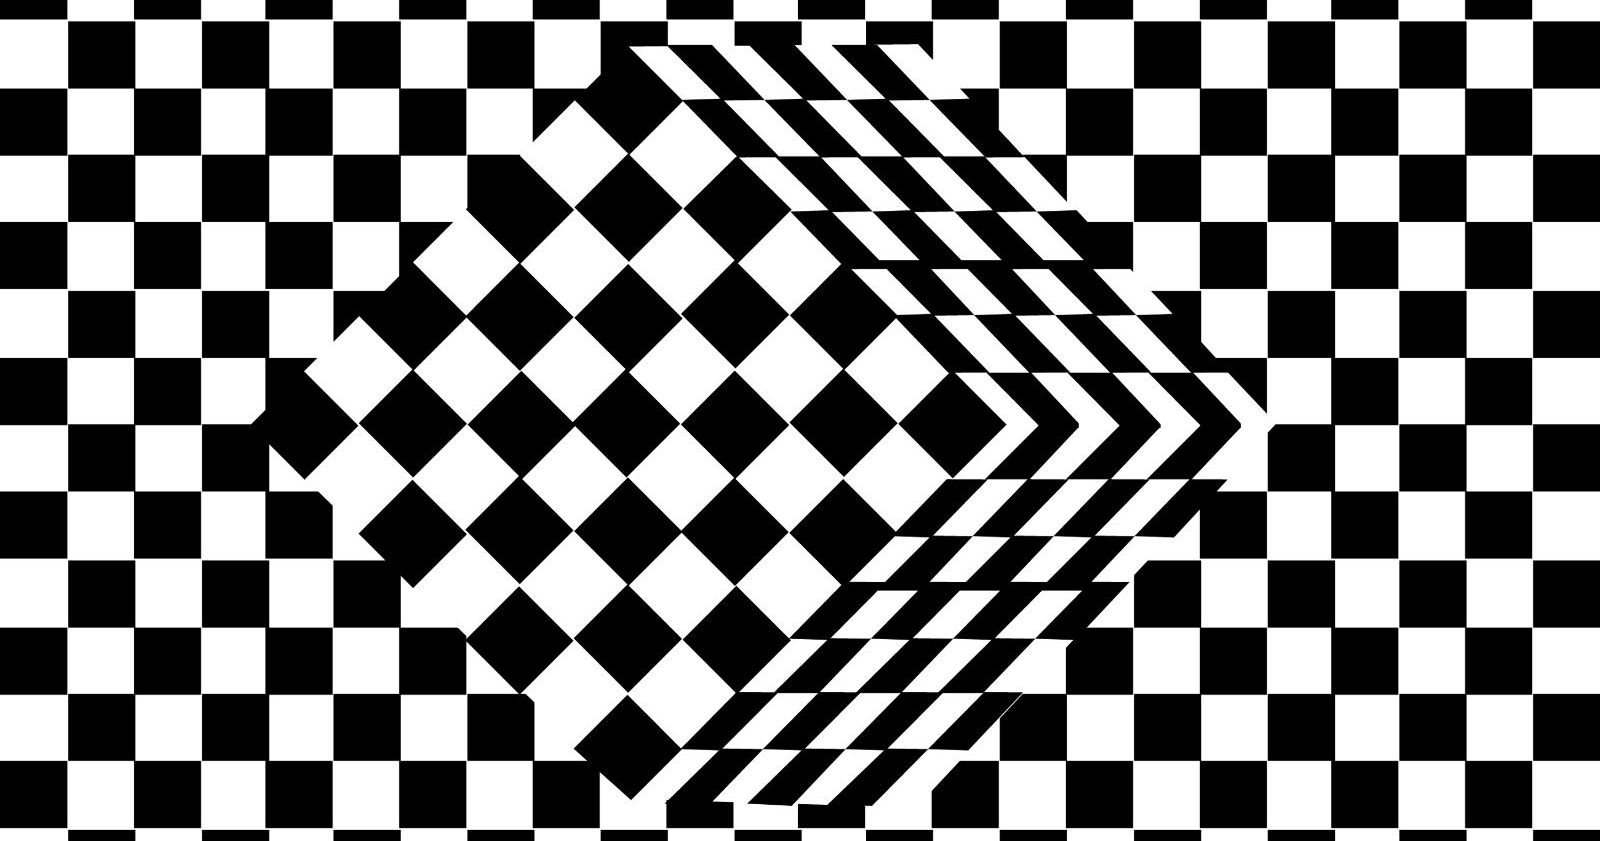 optical illusion illusions coloring eyes cube pages brain 3d magic op vector playbuzz inner cool why experimental adult mind eye